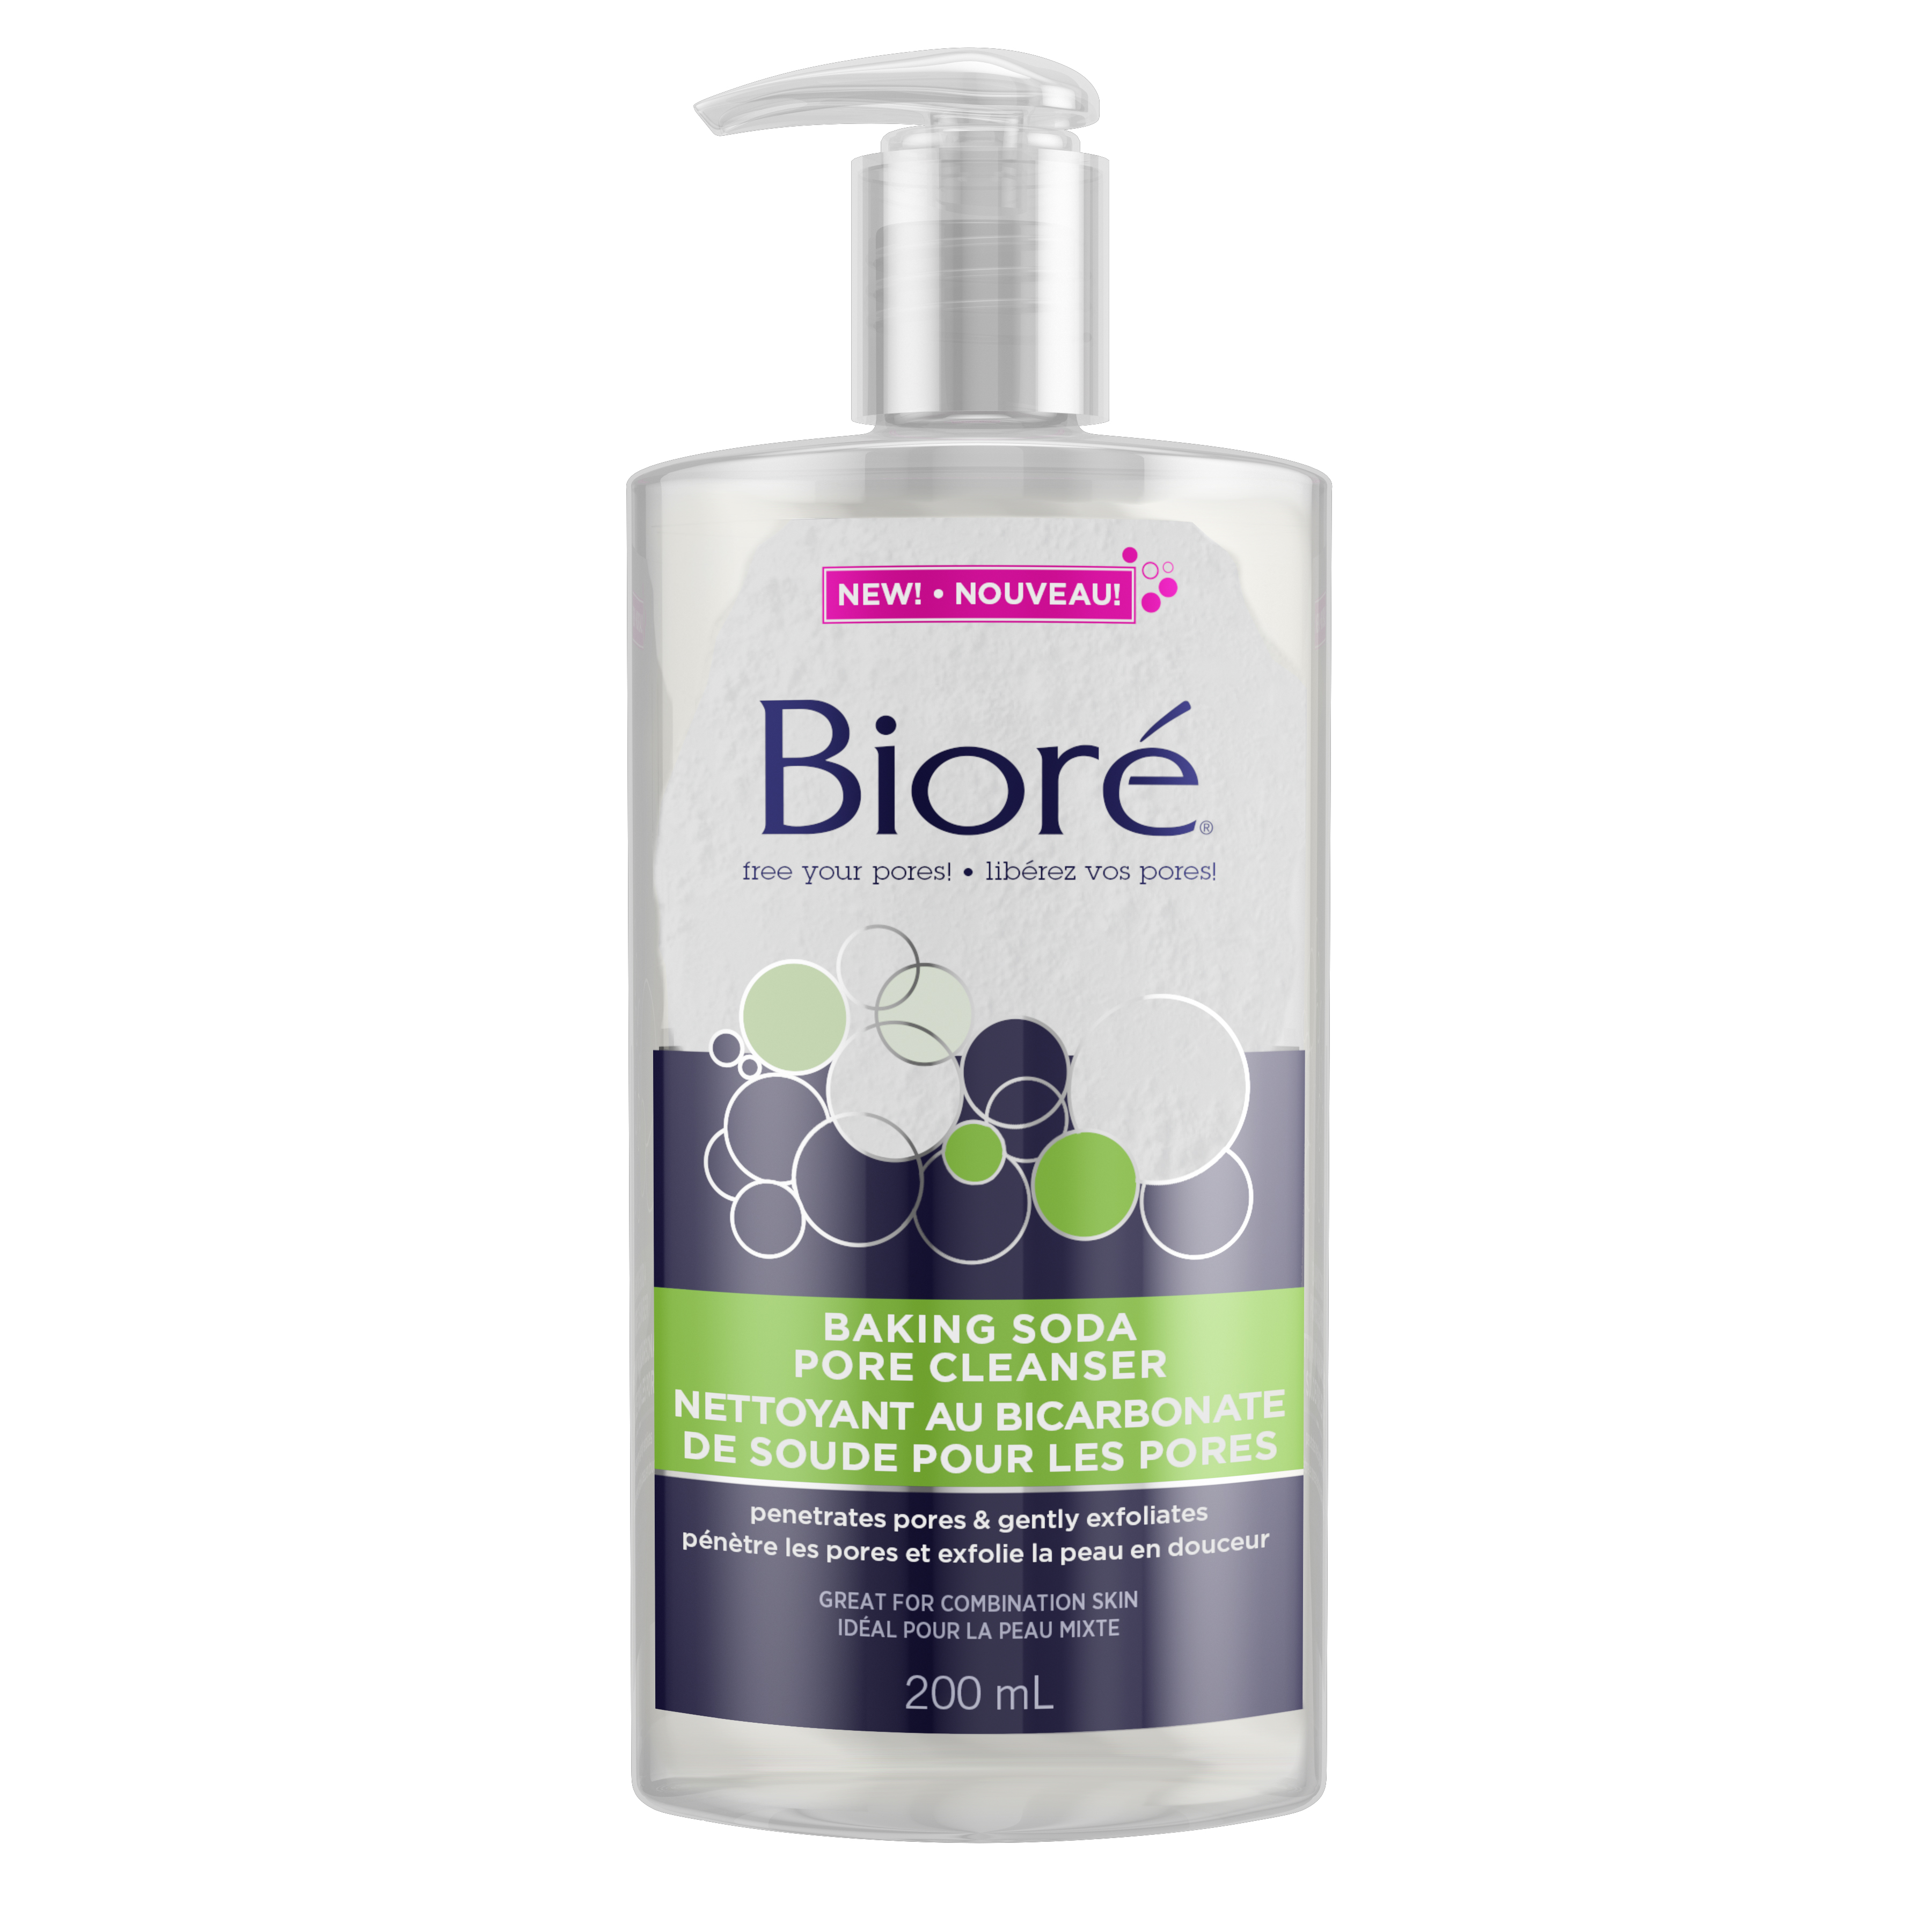 Bioré® Baking Soda Pore Cleanser